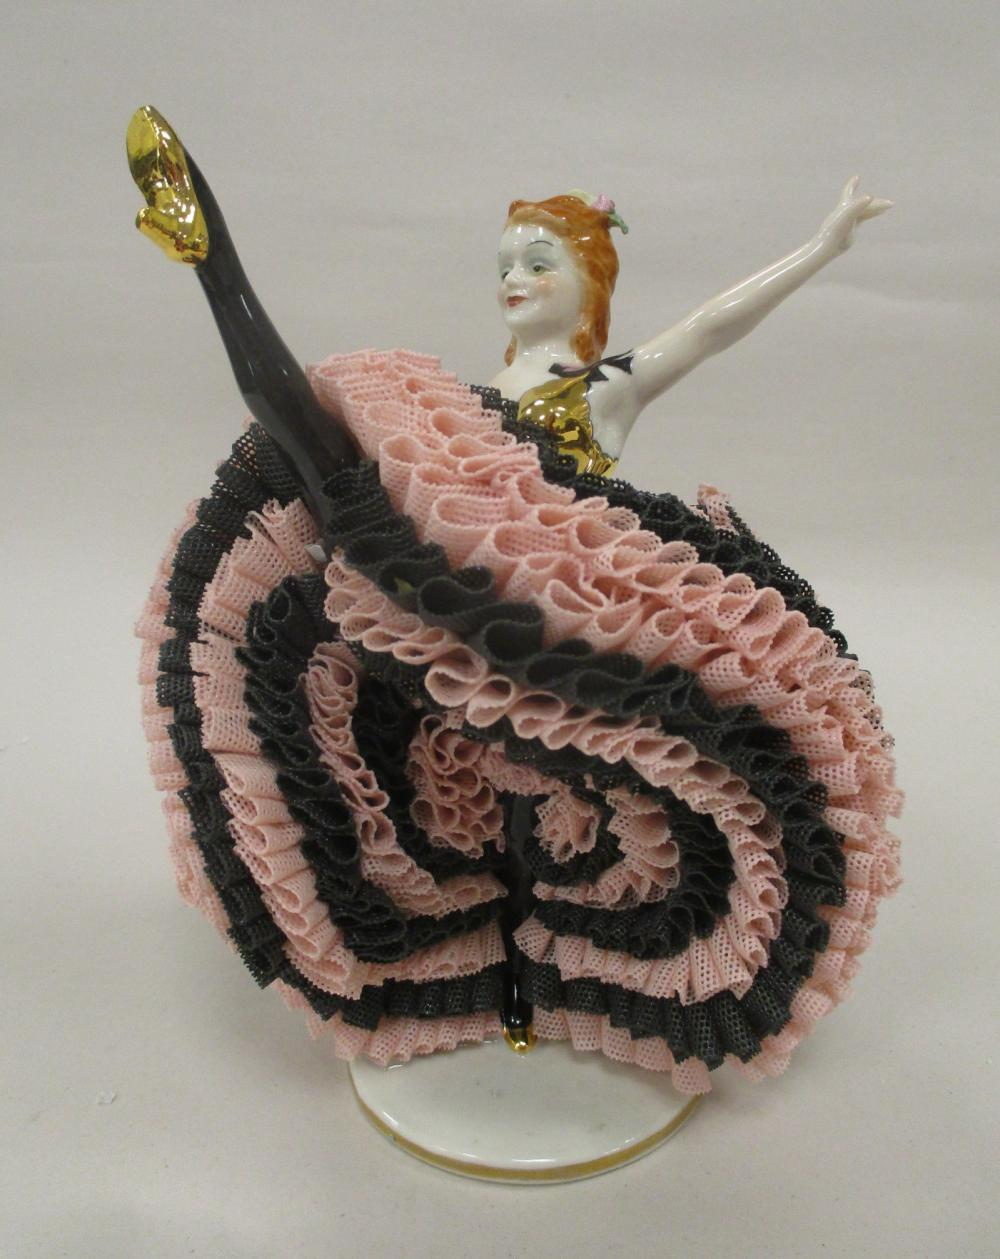 """MZ IRISH DRESDEN PORCELAIN AND LACE FIGURINE """"LAUTY MAE"""". 6.5"""" TALL TO THE TIP OF HER FOOT"""